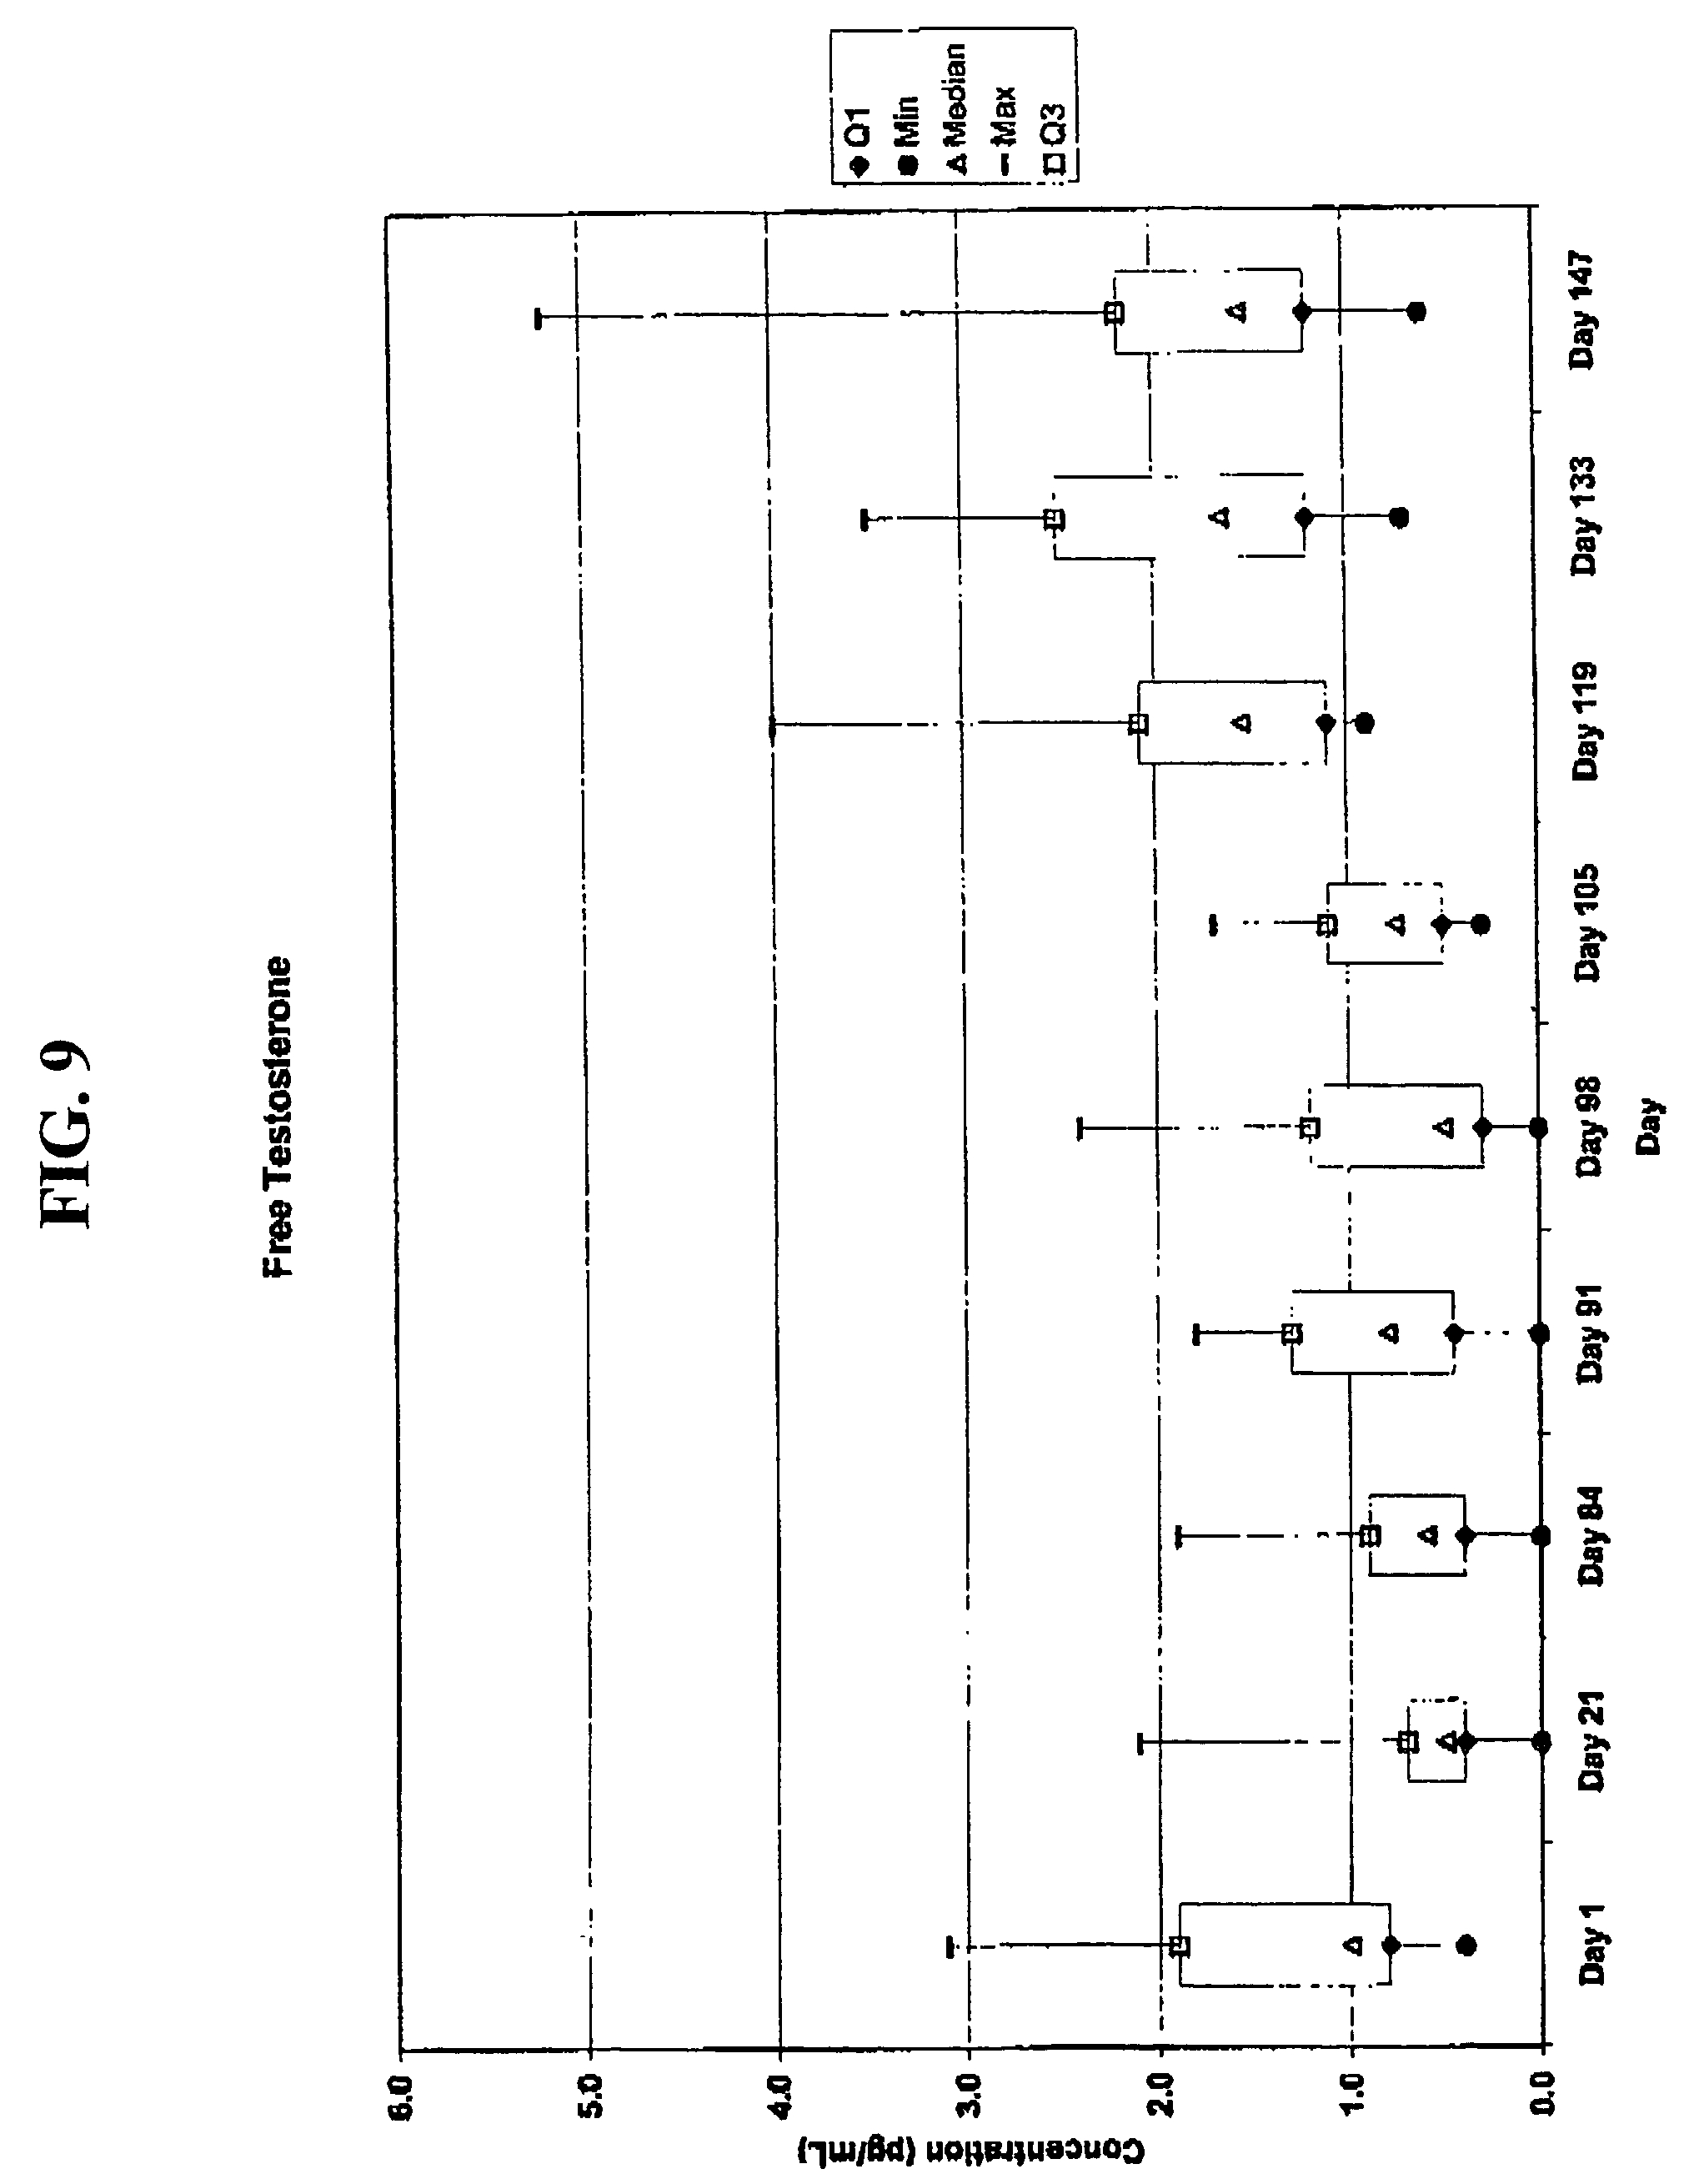 Us7855190B2 - Methods Of Hormonal Treatment Utilizing for Depo Provera 10-13 Week Calendar